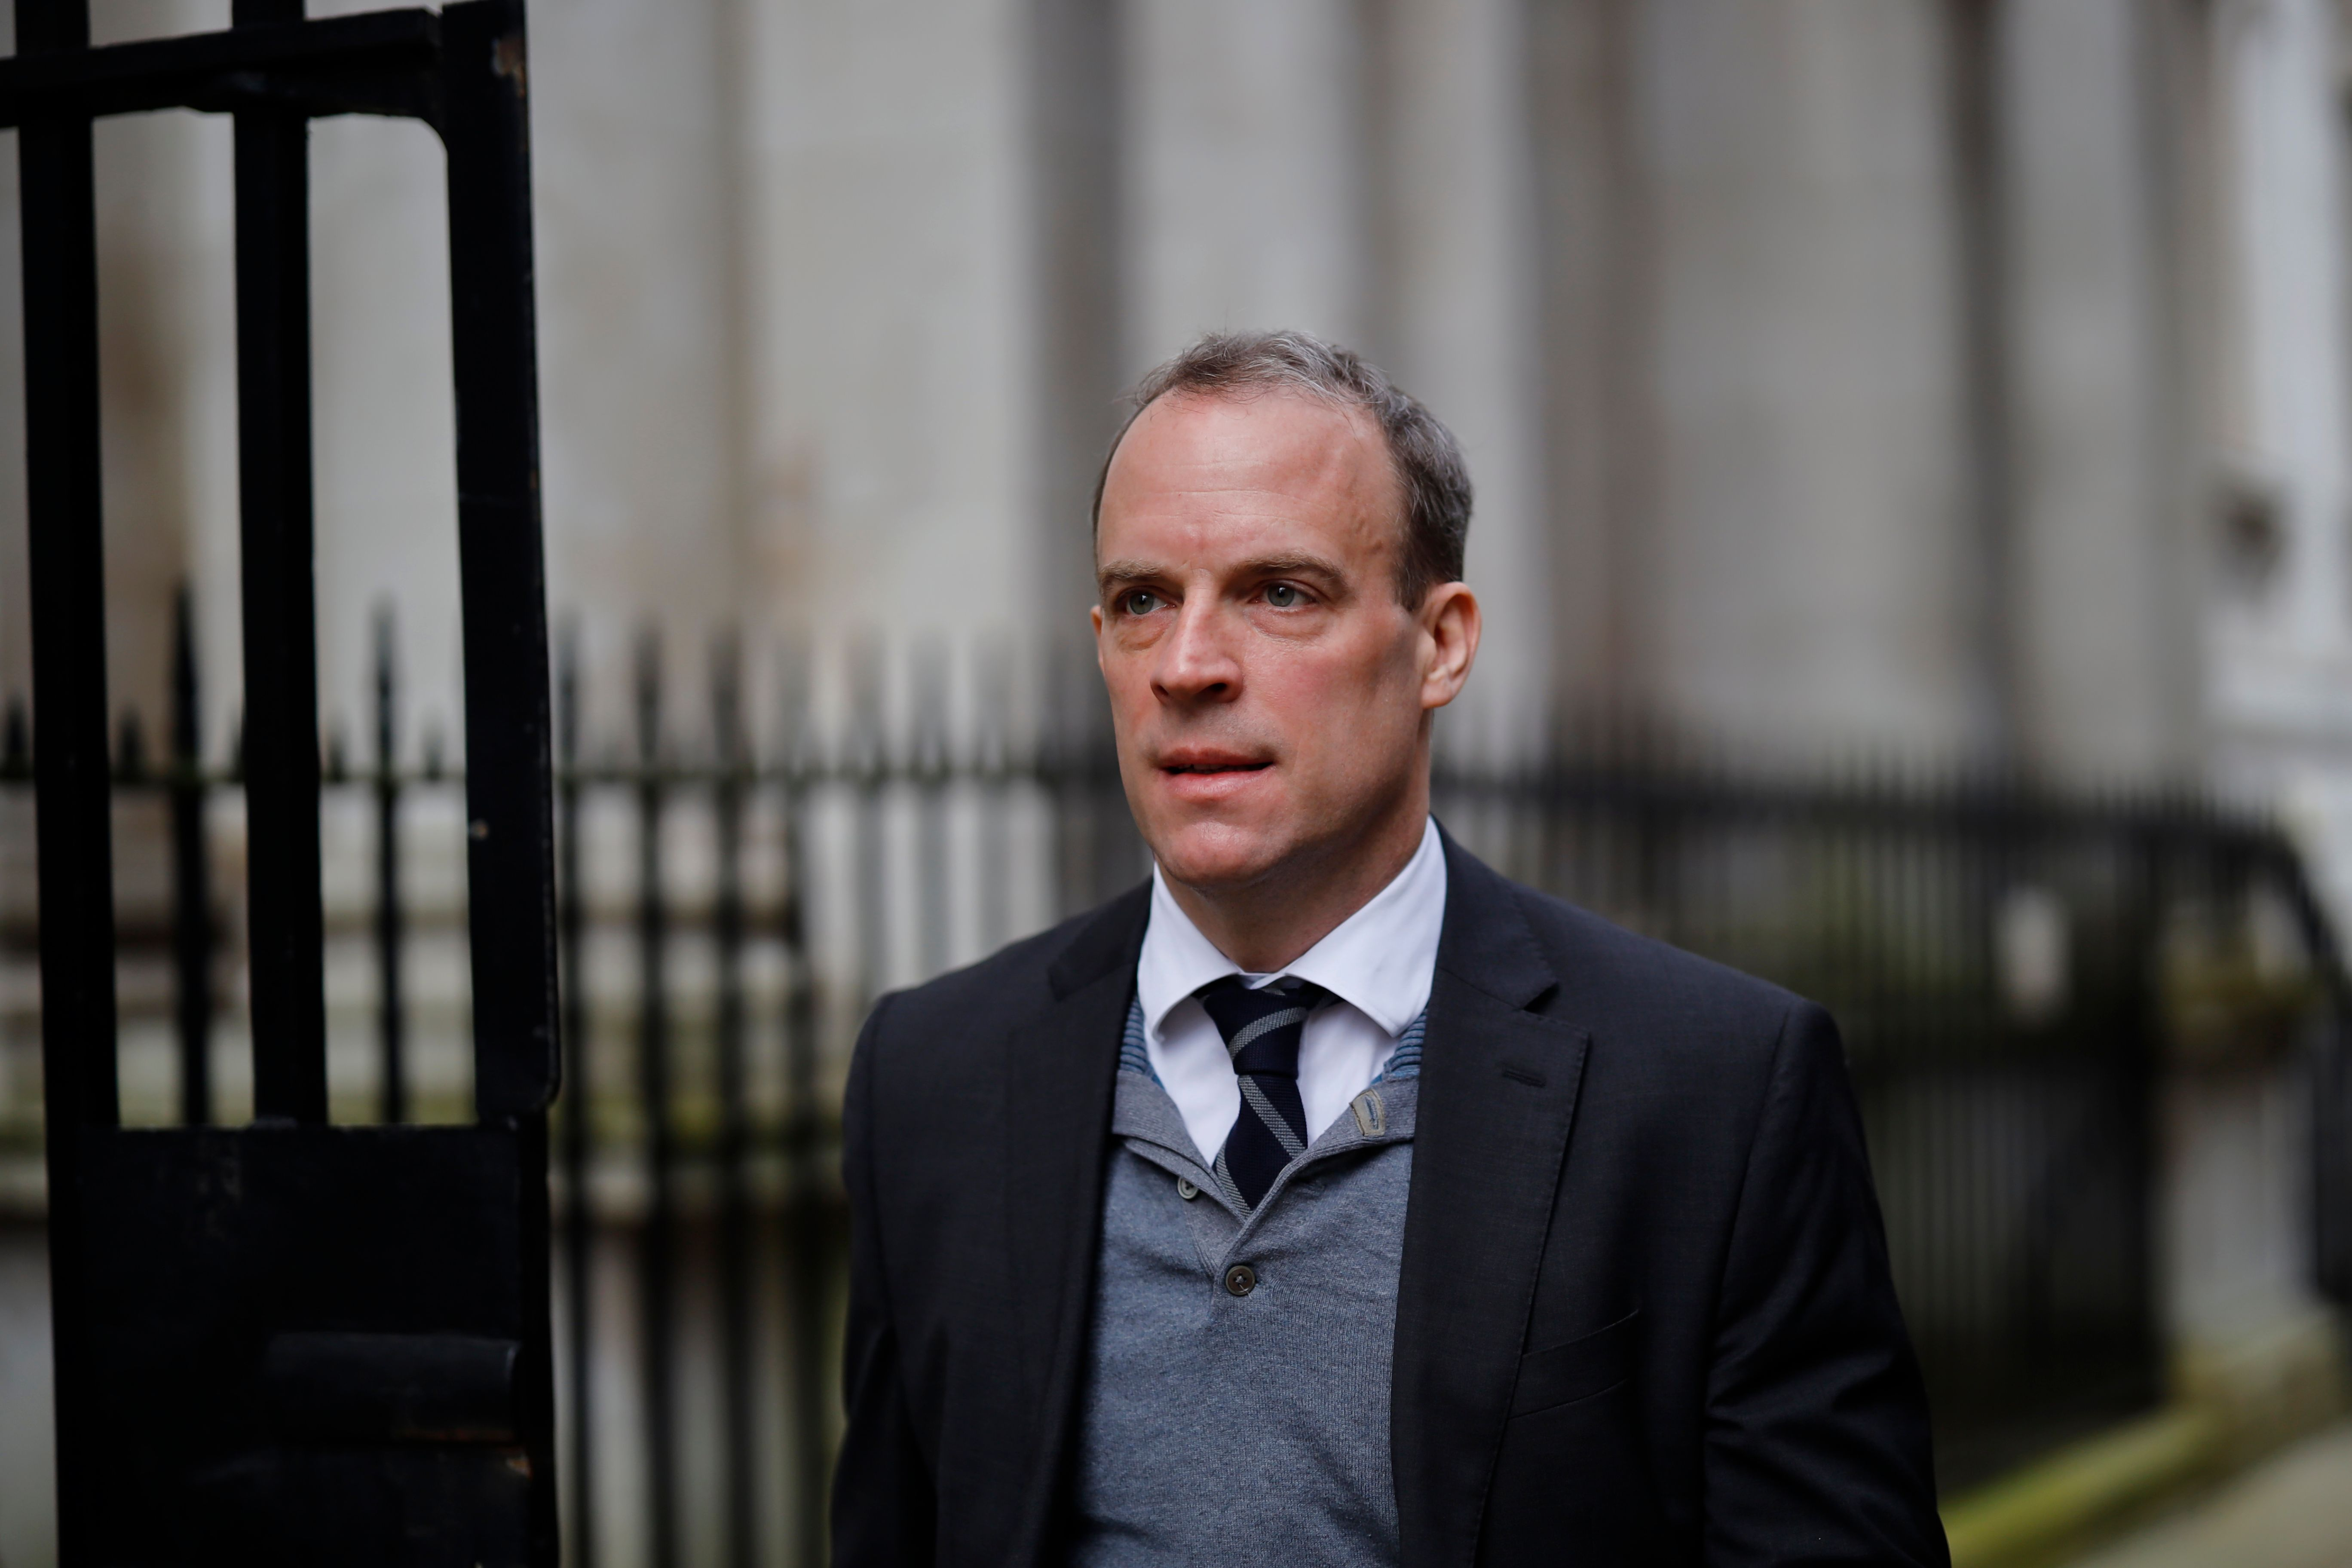 Britain's Foreign Secretary Dominic Raab arrives for a meeting of the cabinet at 10 Downing Street on March 11.